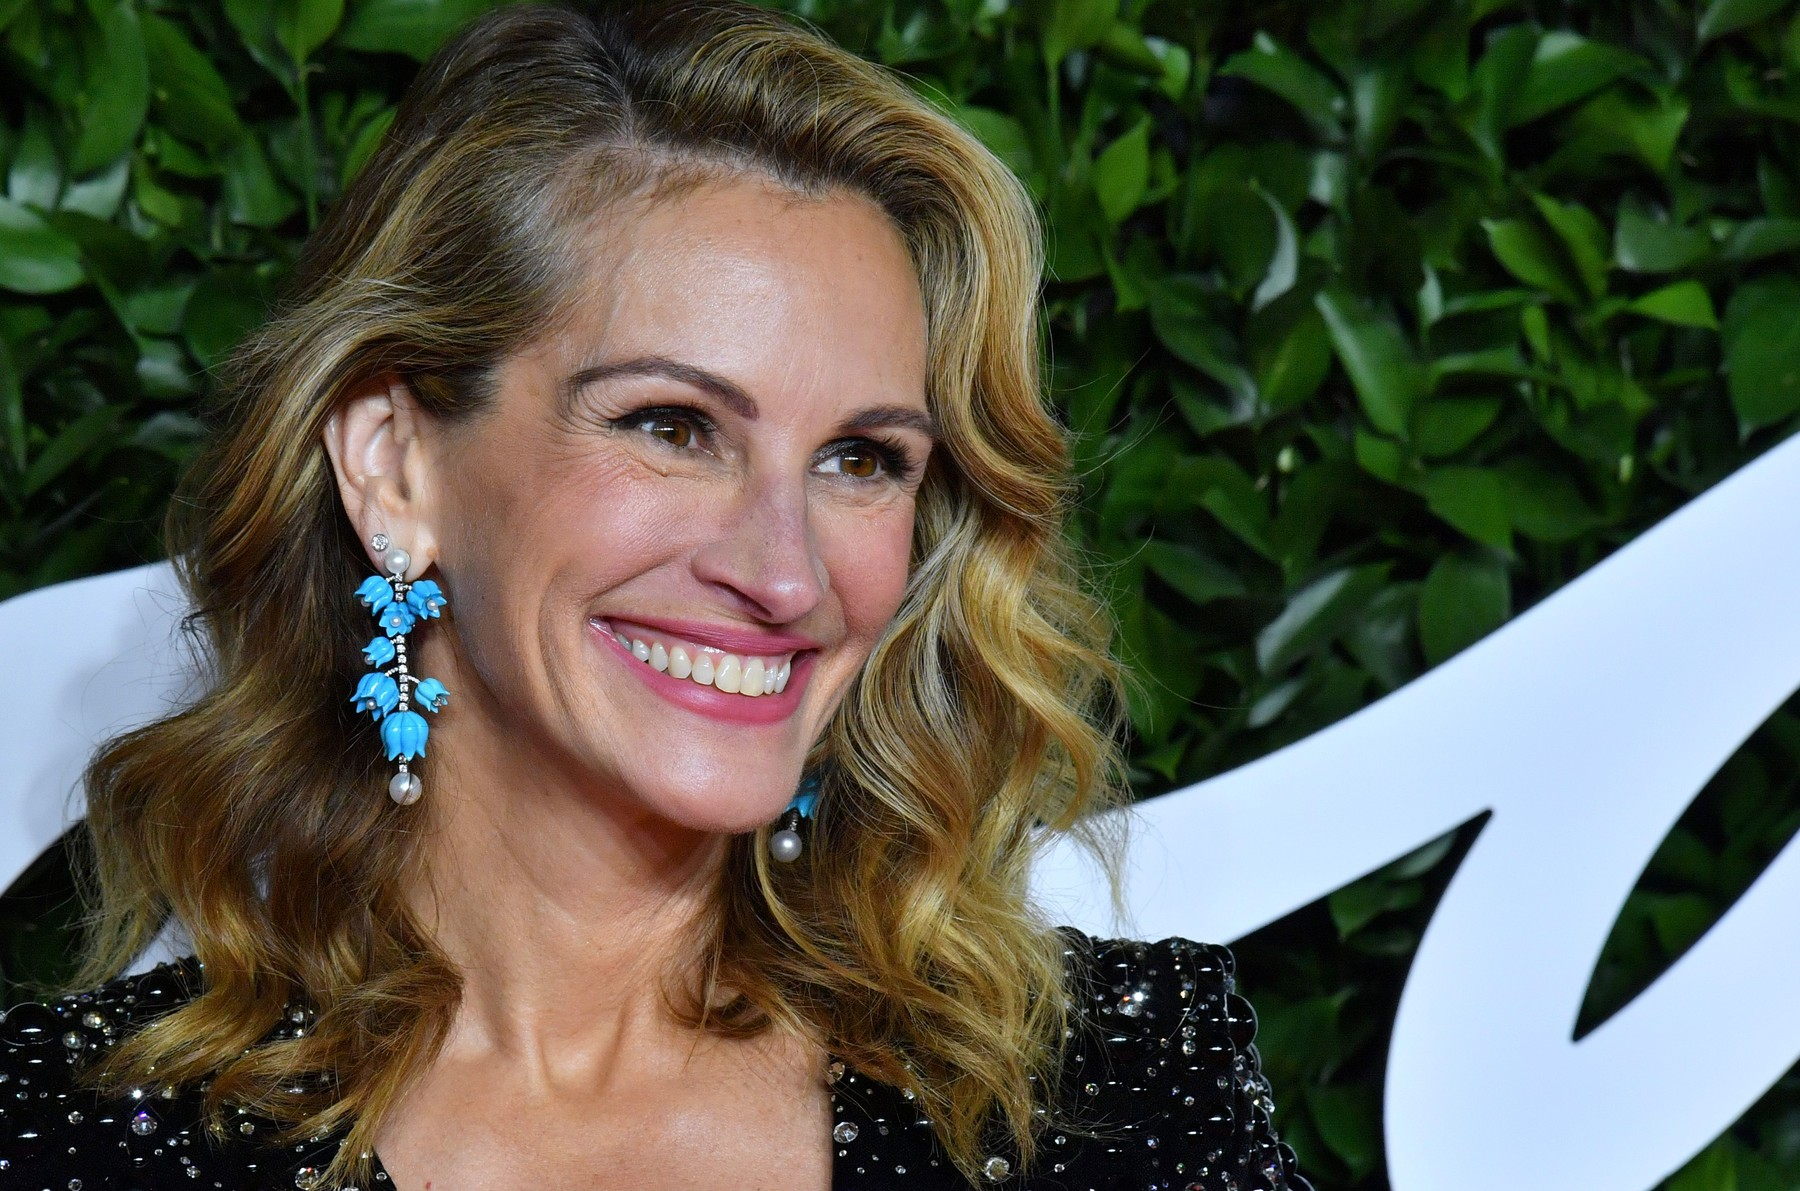 Julia Roberts The Fashion Awards, Arrivals, Royal Albert Hall, London, UK - 02 Dec 2019, Image: 486057869, License: Rights-managed, Restrictions: , Model Release: no, Credit line: Anthony Harvey / Shutterstock Editorial / Profimedia